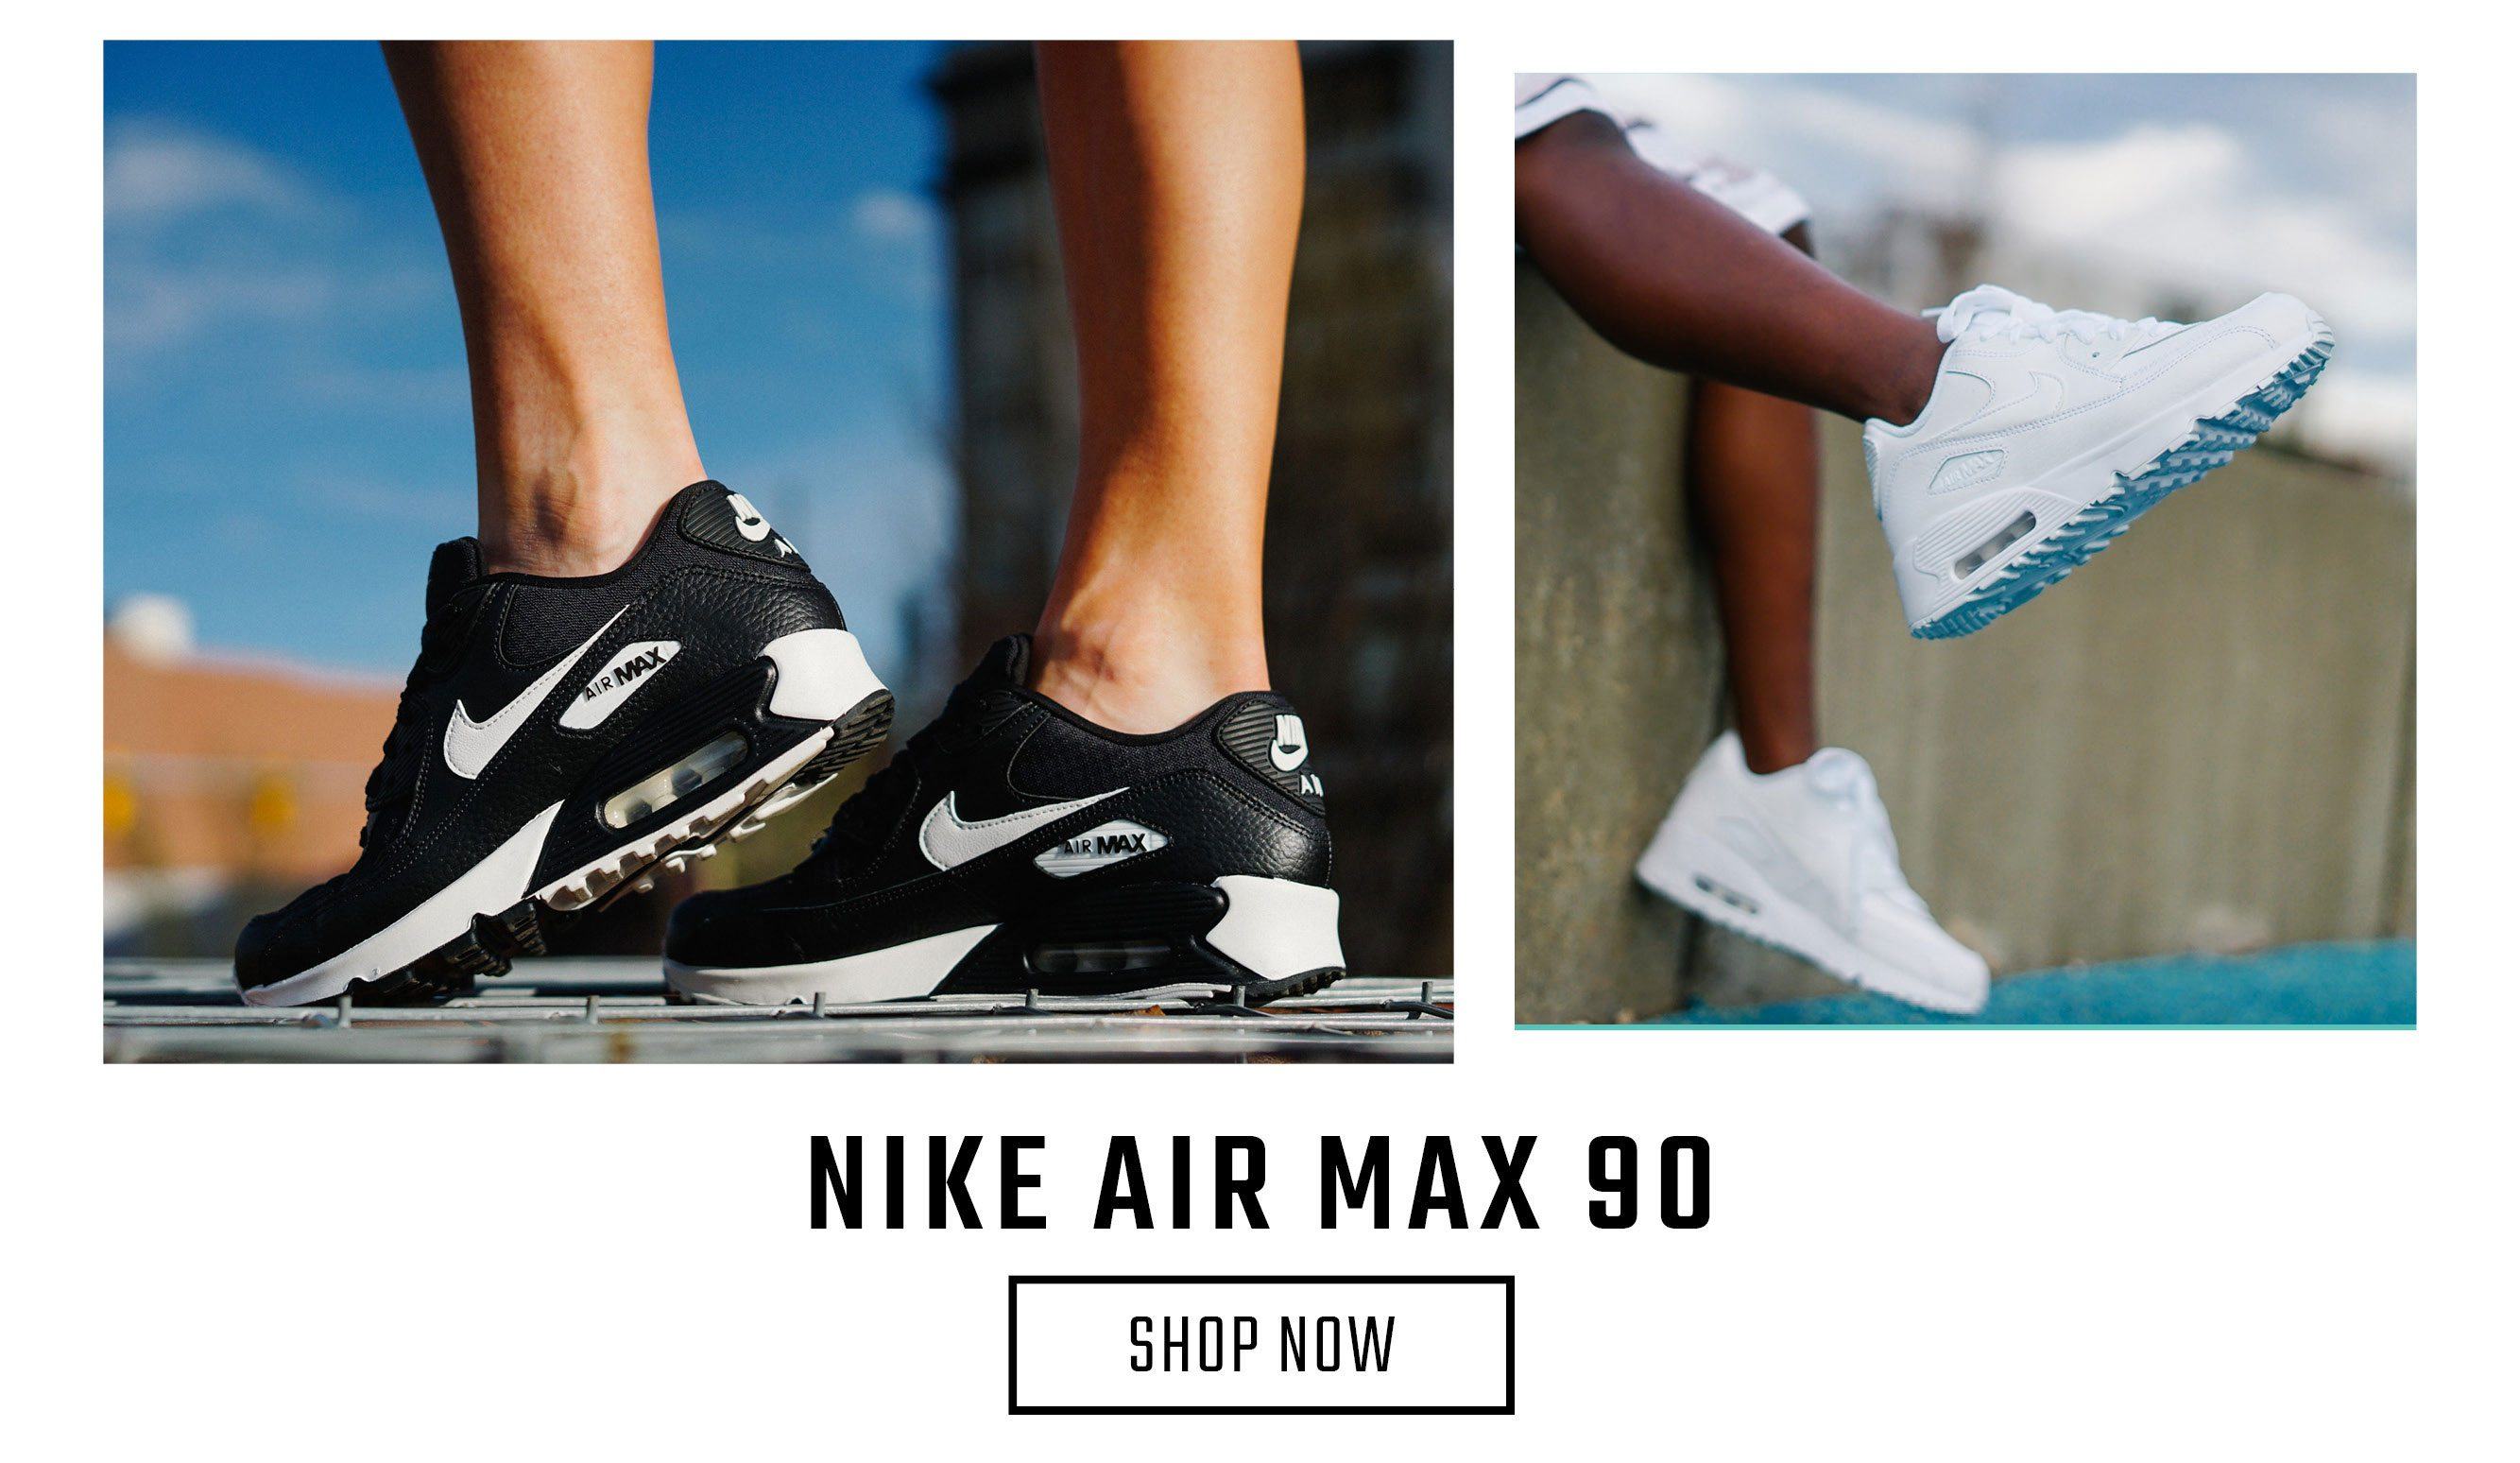 huge selection of 20138 d0364 Get ready for Air Max Day with these classic styles ...